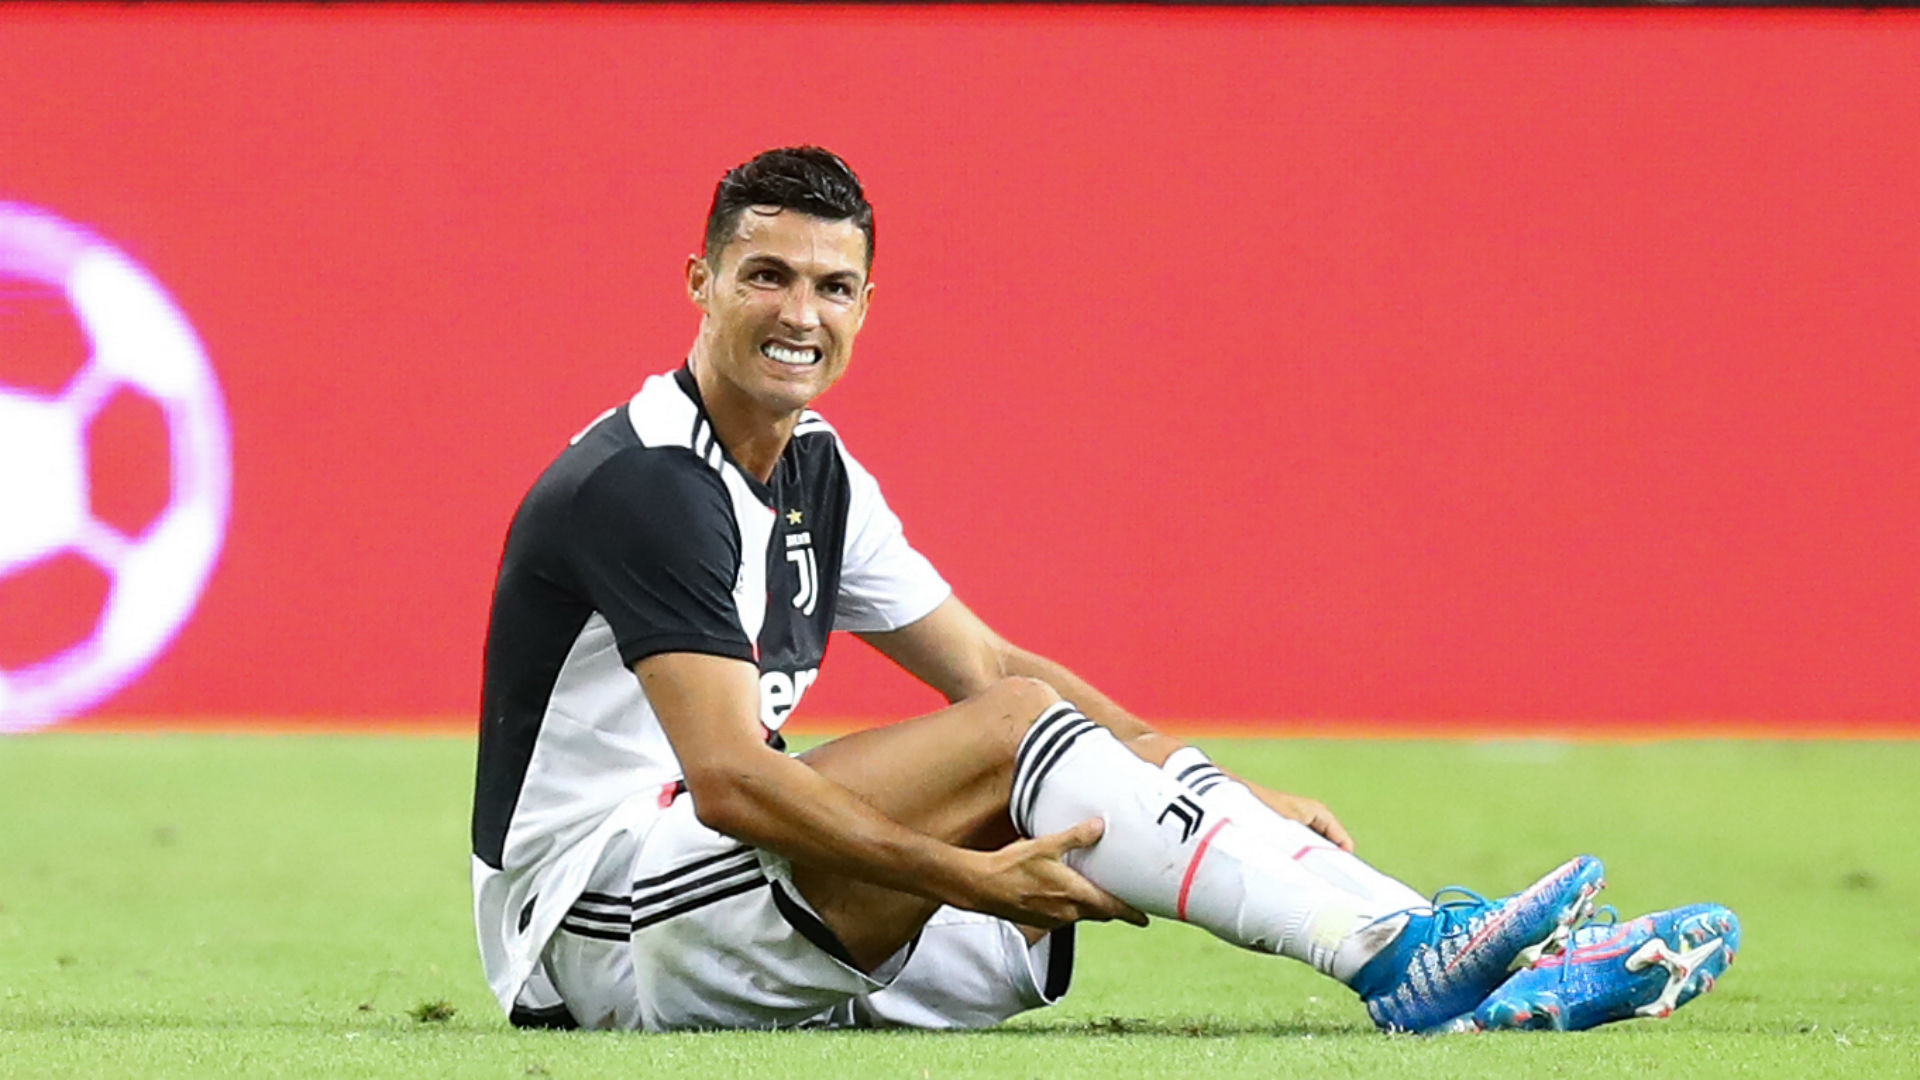 Juventus will not risk playing Cristiano Ronaldo in a practice match, with the 34-year-old suffering from a slight muscle fatigue.